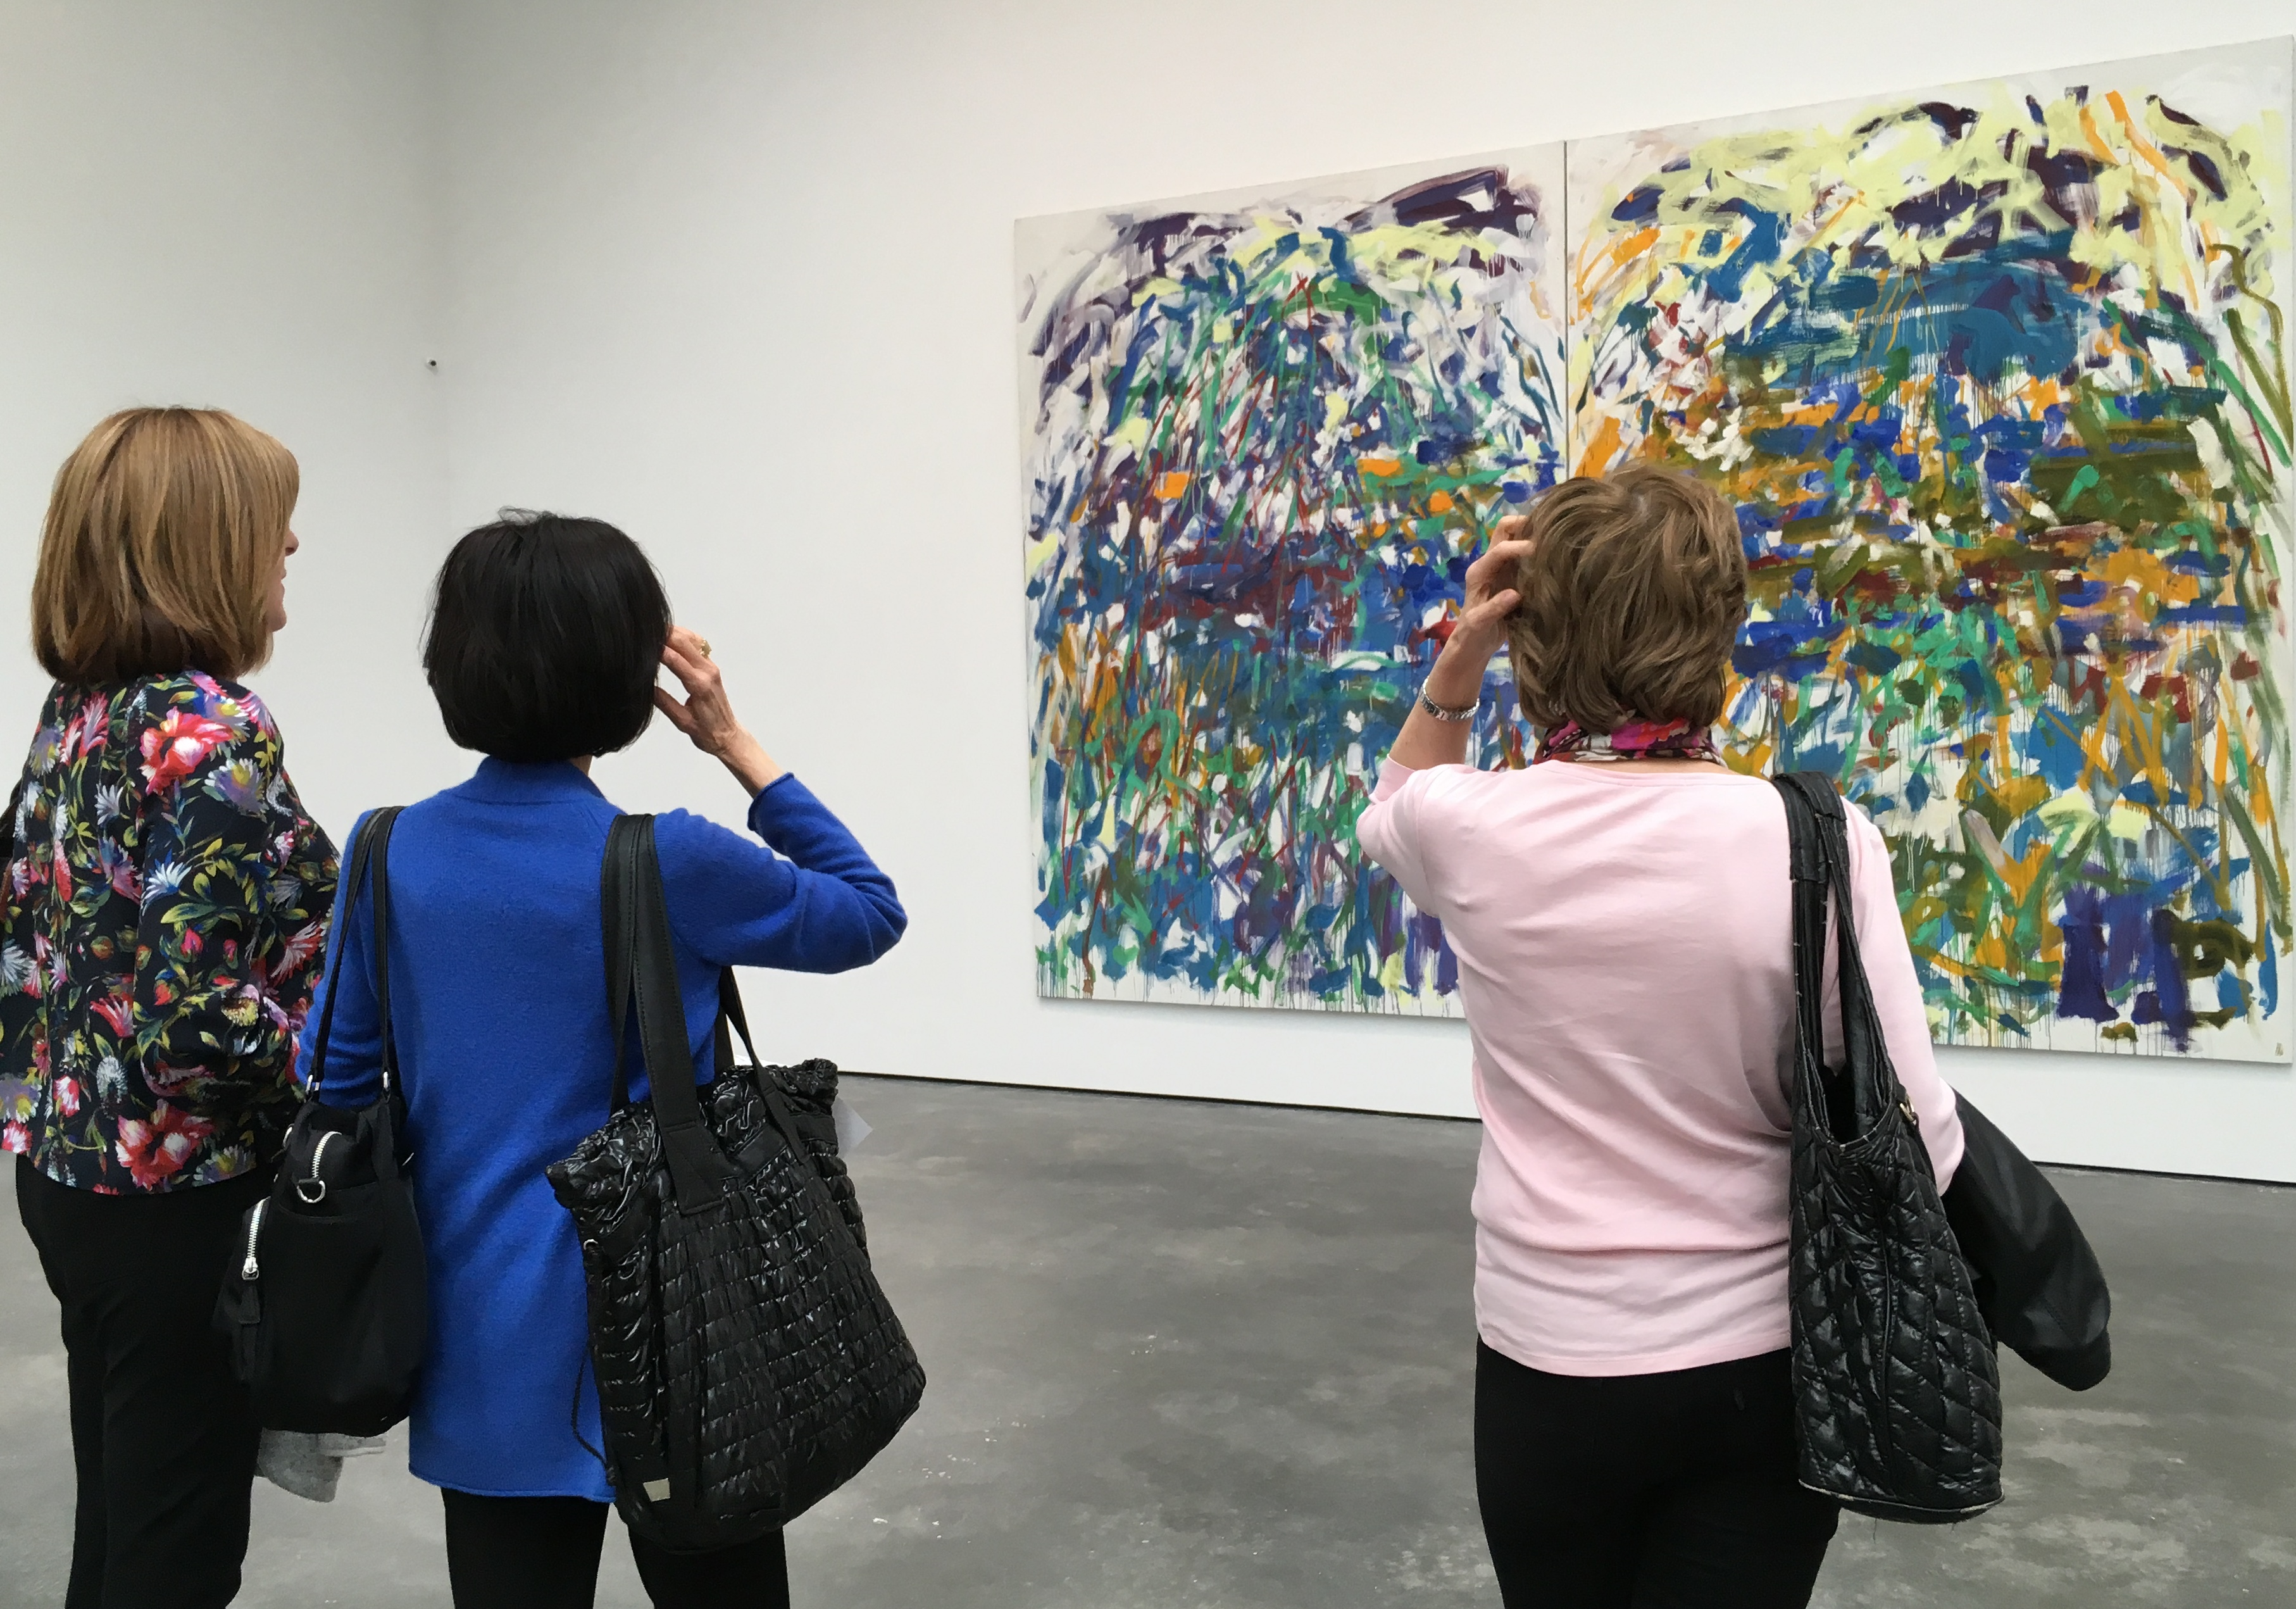 Private Tour of Chelsea Galleries #1